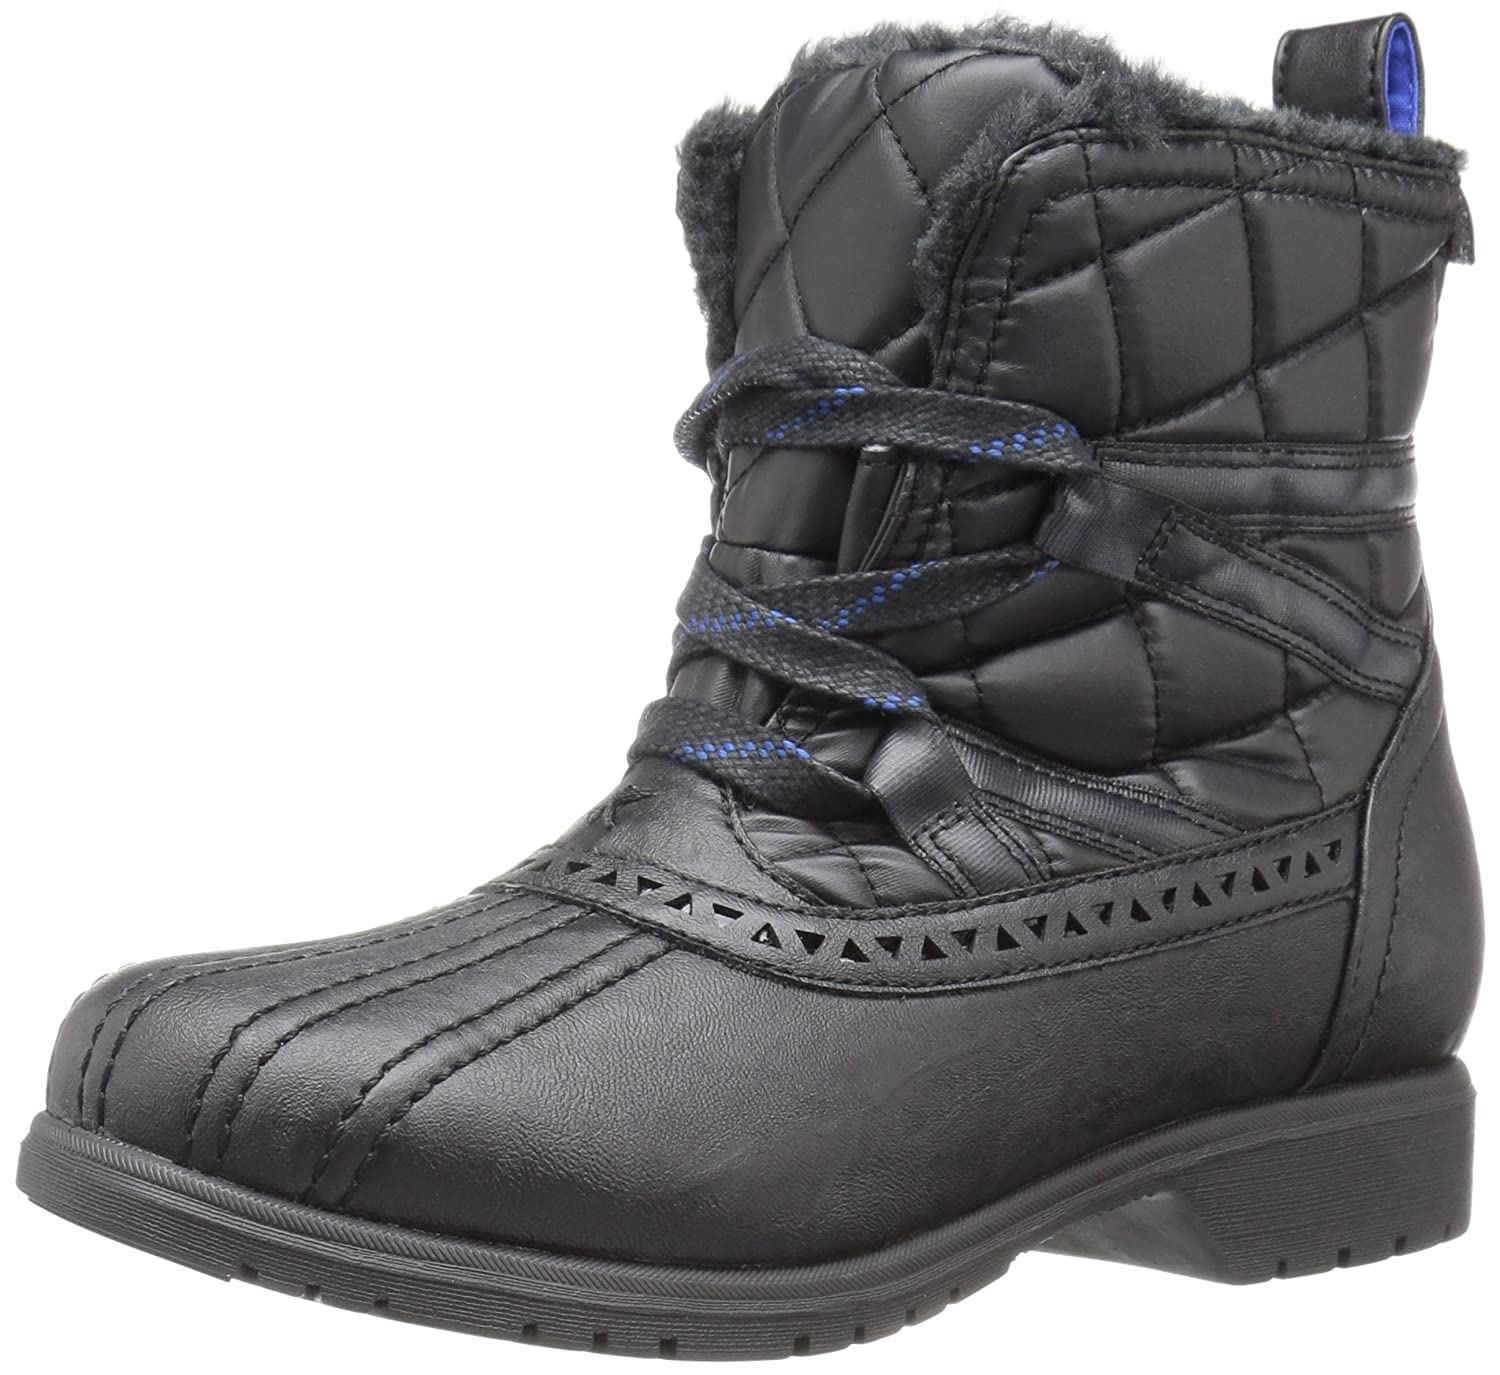 Keds Womens Snowday Bootie Snow Boot